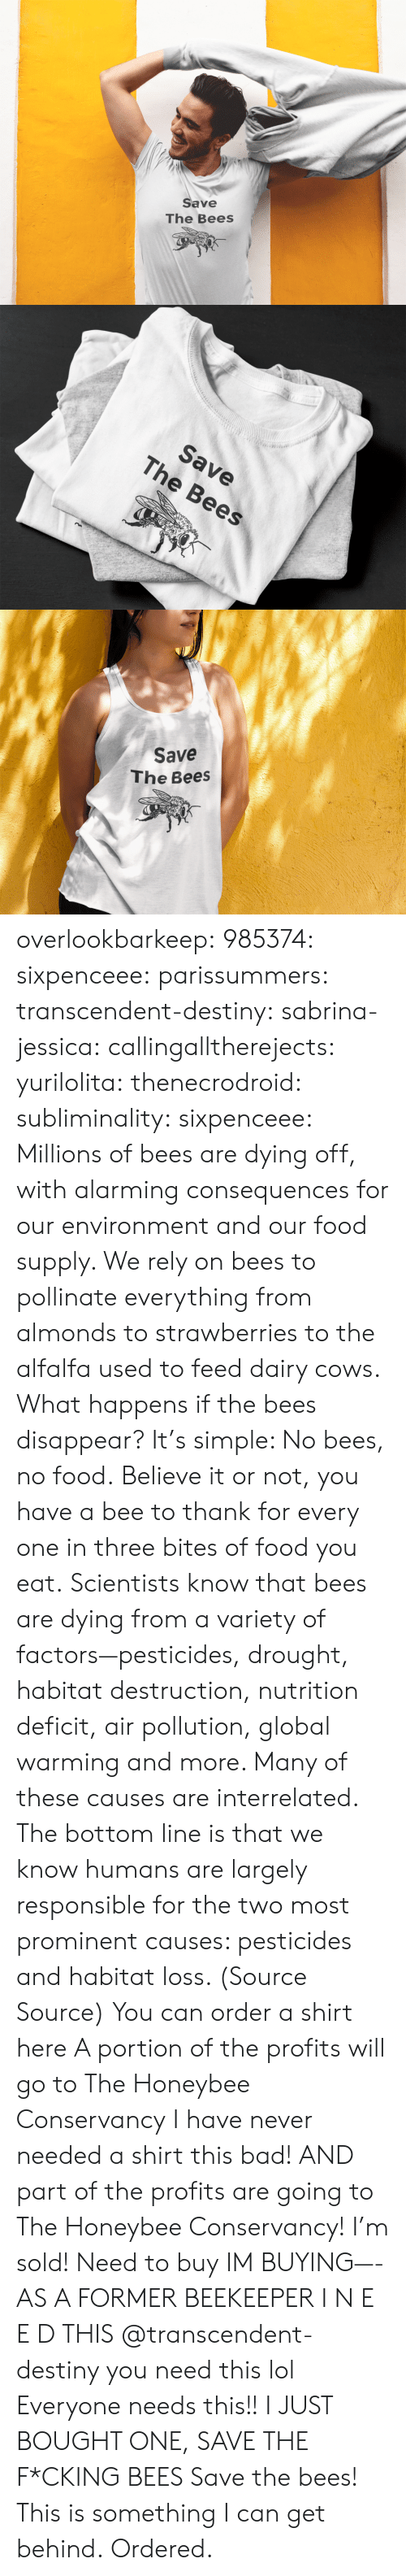 Globalism: Save  The Bees   Save  The Bees   Save  The Bees overlookbarkeep:  985374: sixpenceee:  parissummers:  transcendent-destiny:  sabrina-jessica:   callingalltherejects:  yurilolita:  thenecrodroid:  subliminality:   sixpenceee:   Millions of bees are dying off, with alarming consequences for our environment and our food supply. We rely on bees to pollinate everything from almonds to strawberries to the alfalfa used to feed dairy cows. What happens if the bees disappear? It's simple: No bees, no food.Believe it or not, you have a bee to thank for every one in three bites of food you eat. Scientists know that bees are dying from a variety of factors—pesticides, drought, habitat destruction, nutrition deficit, air pollution, global warming and more. Many of these causes are interrelated. The bottom line is that we know humans are largely responsible for the two most prominent causes: pesticides and habitat loss. (Source  Source) You can order a shirt here A portion of the profits will go toThe Honeybee Conservancy   I have never needed a shirt this bad! AND part of the profits are going to The Honeybee Conservancy! I'm sold!   Need to buy   IM BUYING—-   AS A FORMER BEEKEEPER I N E E D THIS   @transcendent-destiny you need this lol  Everyone needs this!!   I JUST BOUGHT ONE, SAVE THE F*CKING BEES  Save the bees!  This is something I can get behind.   Ordered.